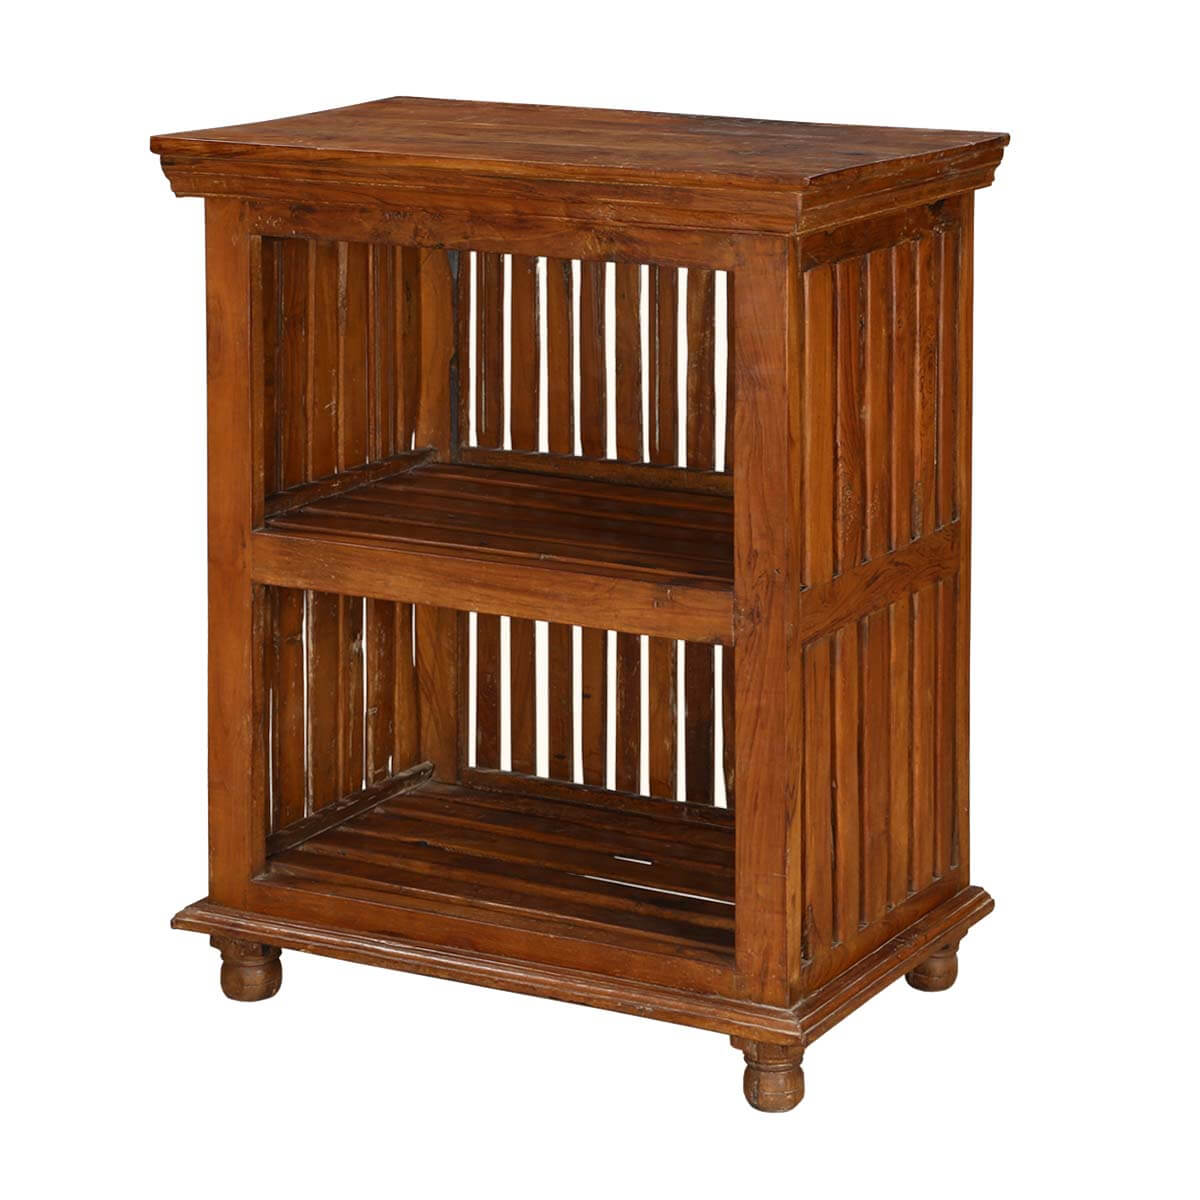 Contemporary Asian Teak Wood Vented Sides Nightstand End Table